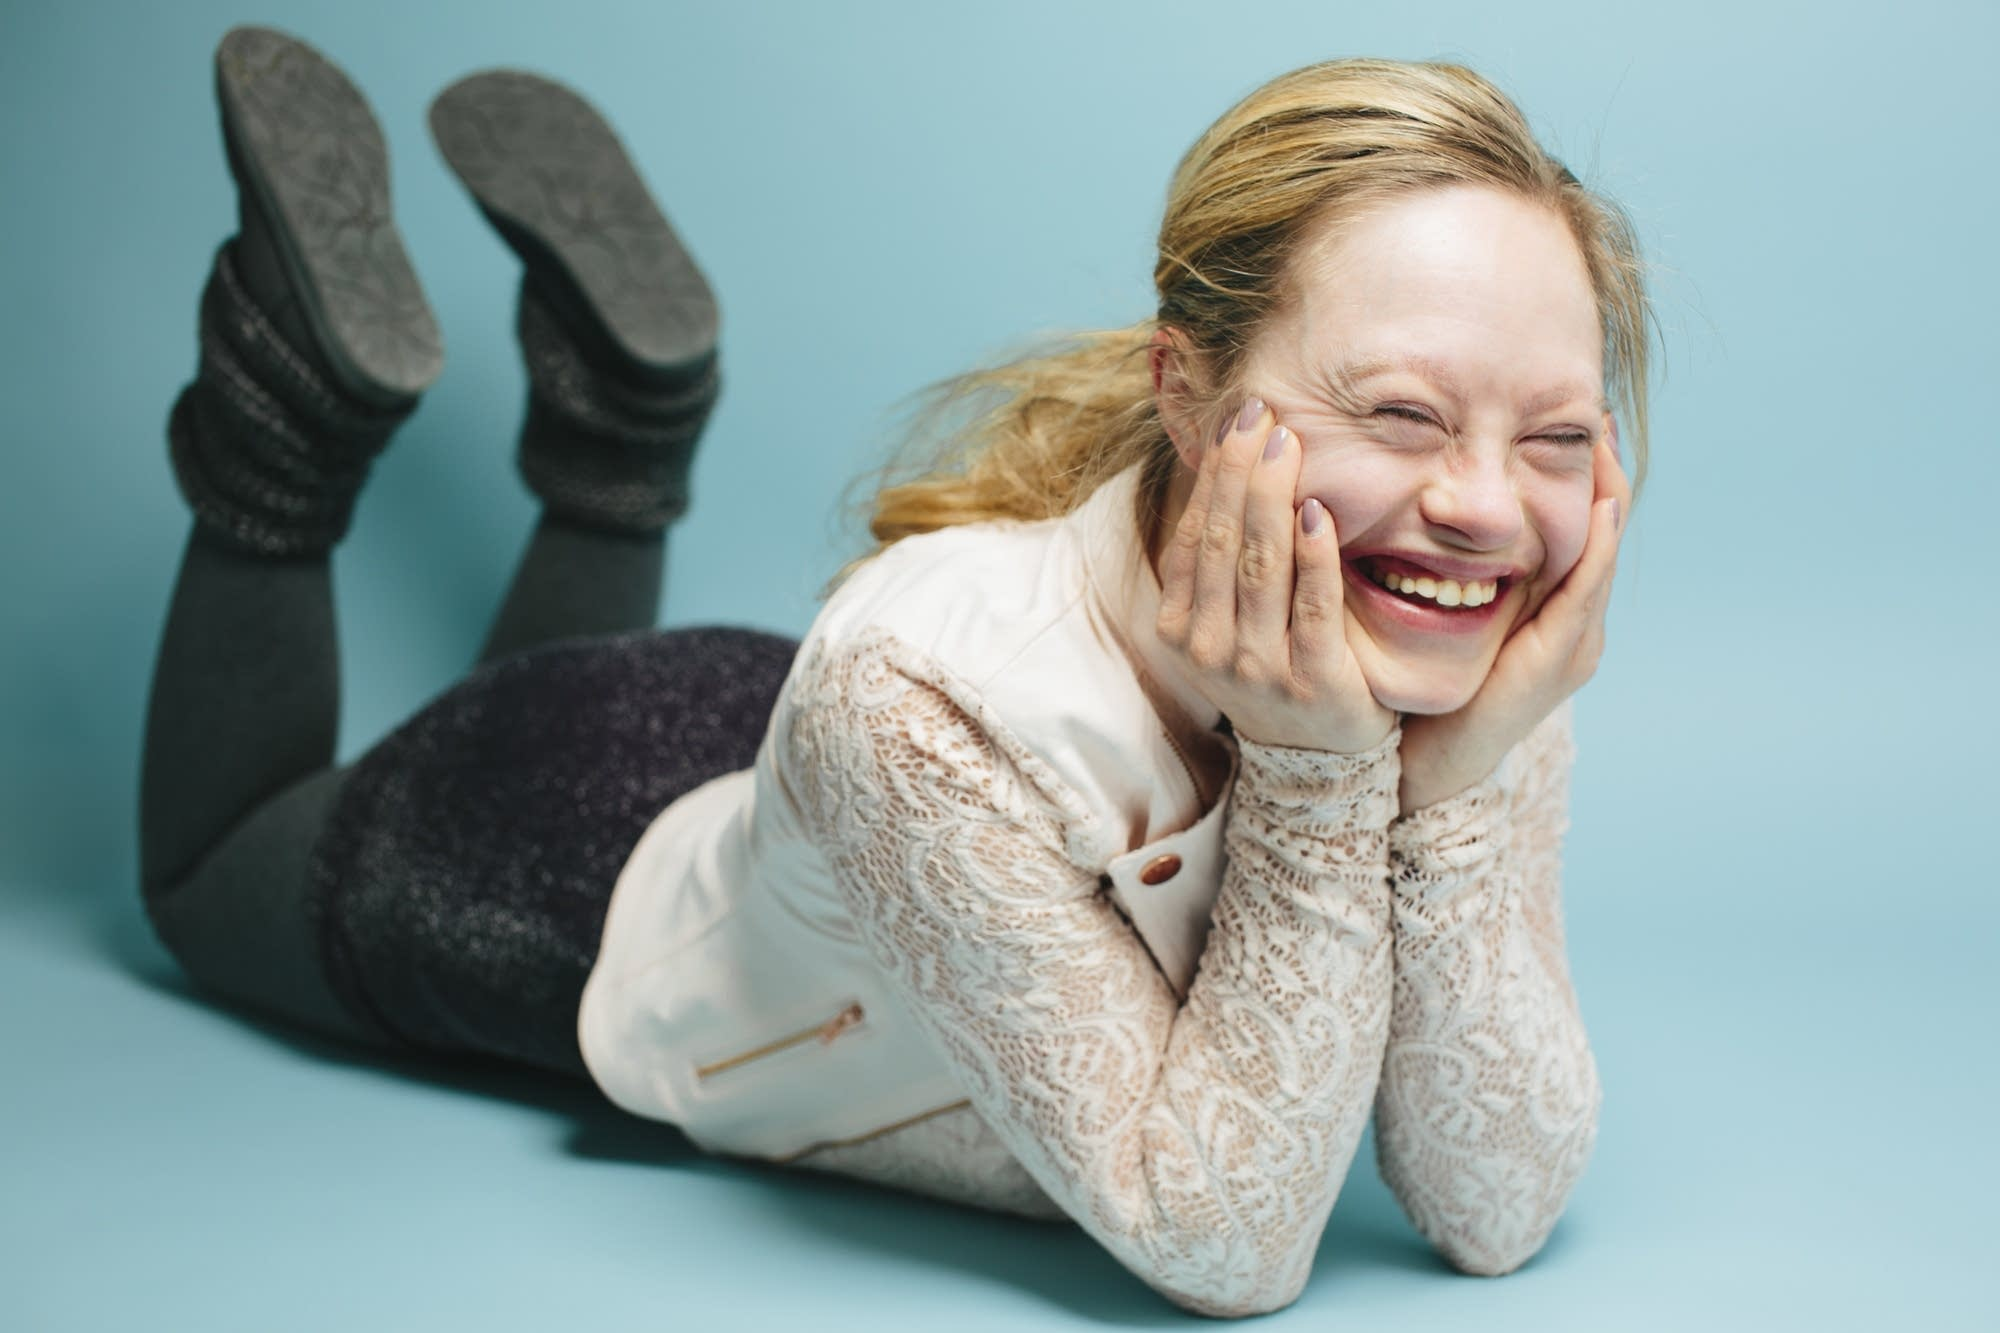 Mikayla Holmgren laughs during a portrait session